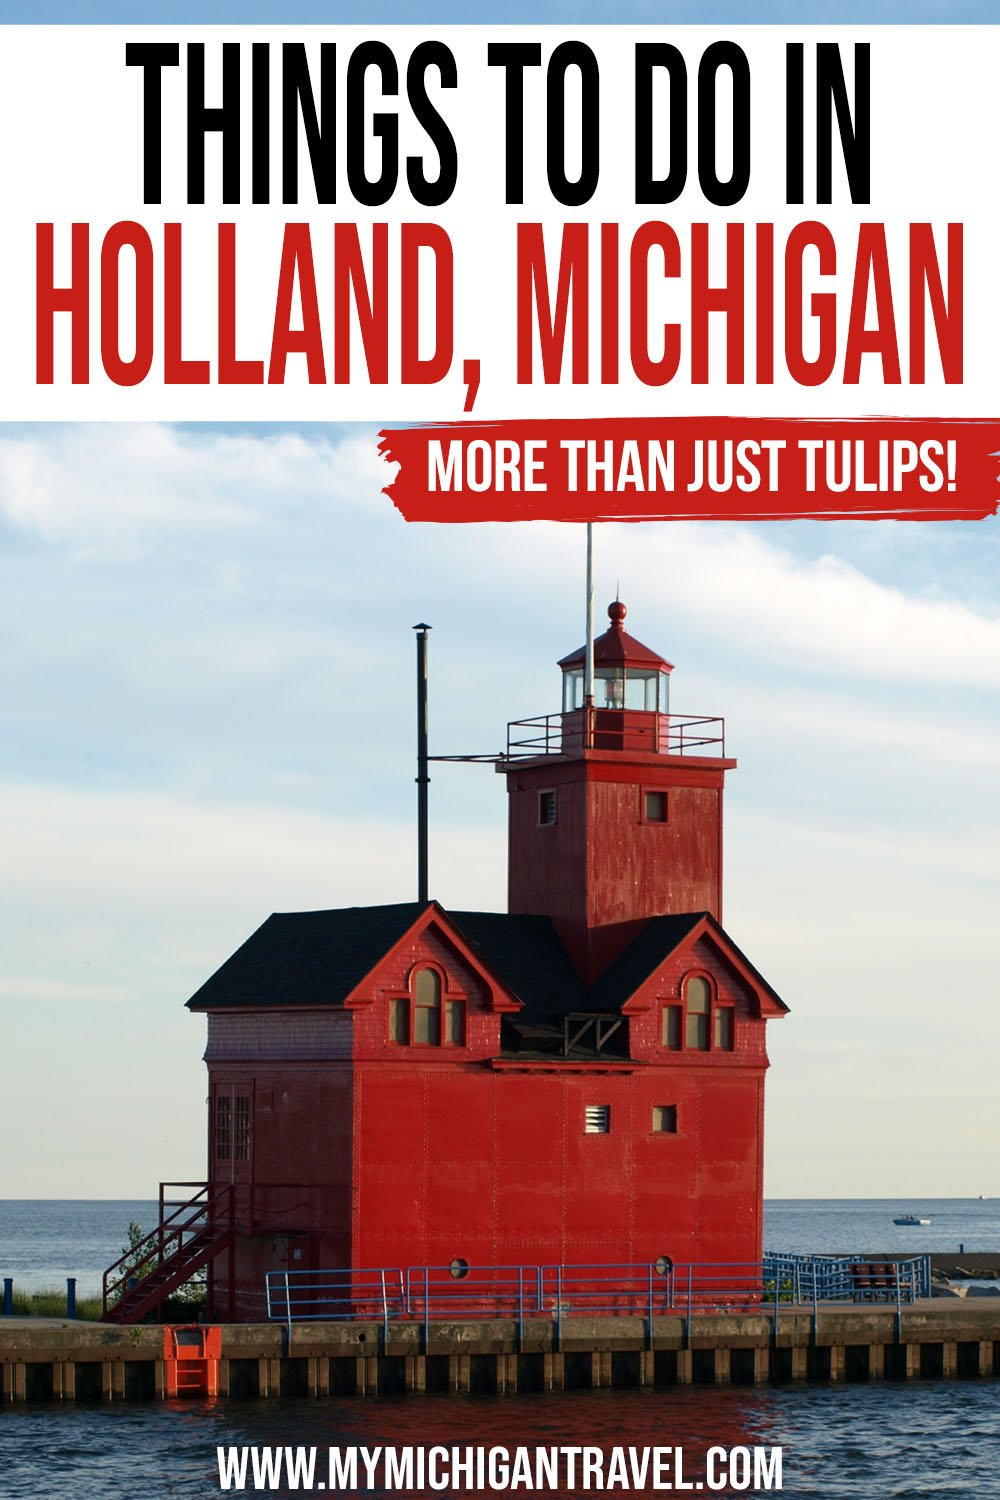 """Photo of a small, red lighthouse along the shores of Lake Michigan with text overlay reading, """"Things to do in Holland, Michigan - more than just tulips!"""""""